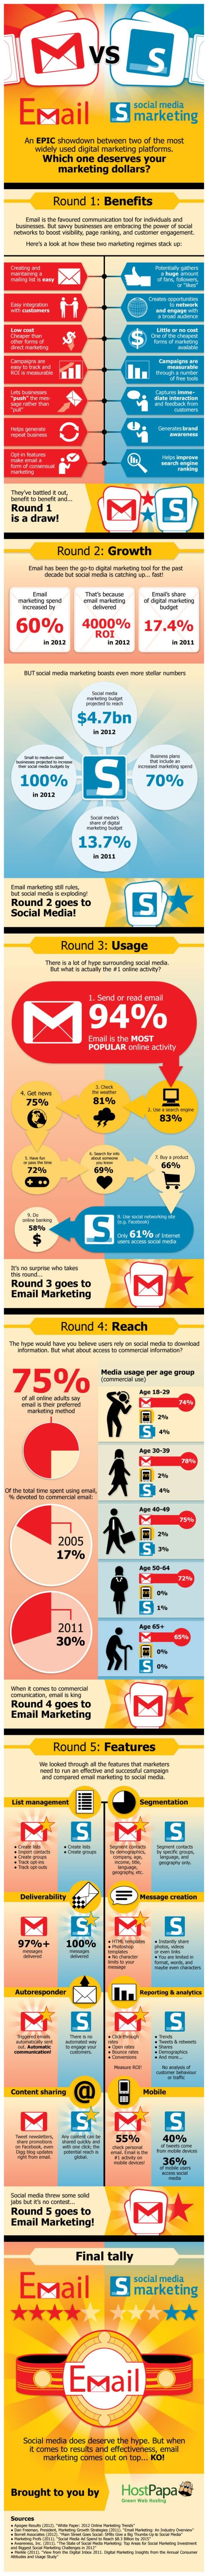 Email vs Social Media #Infographic